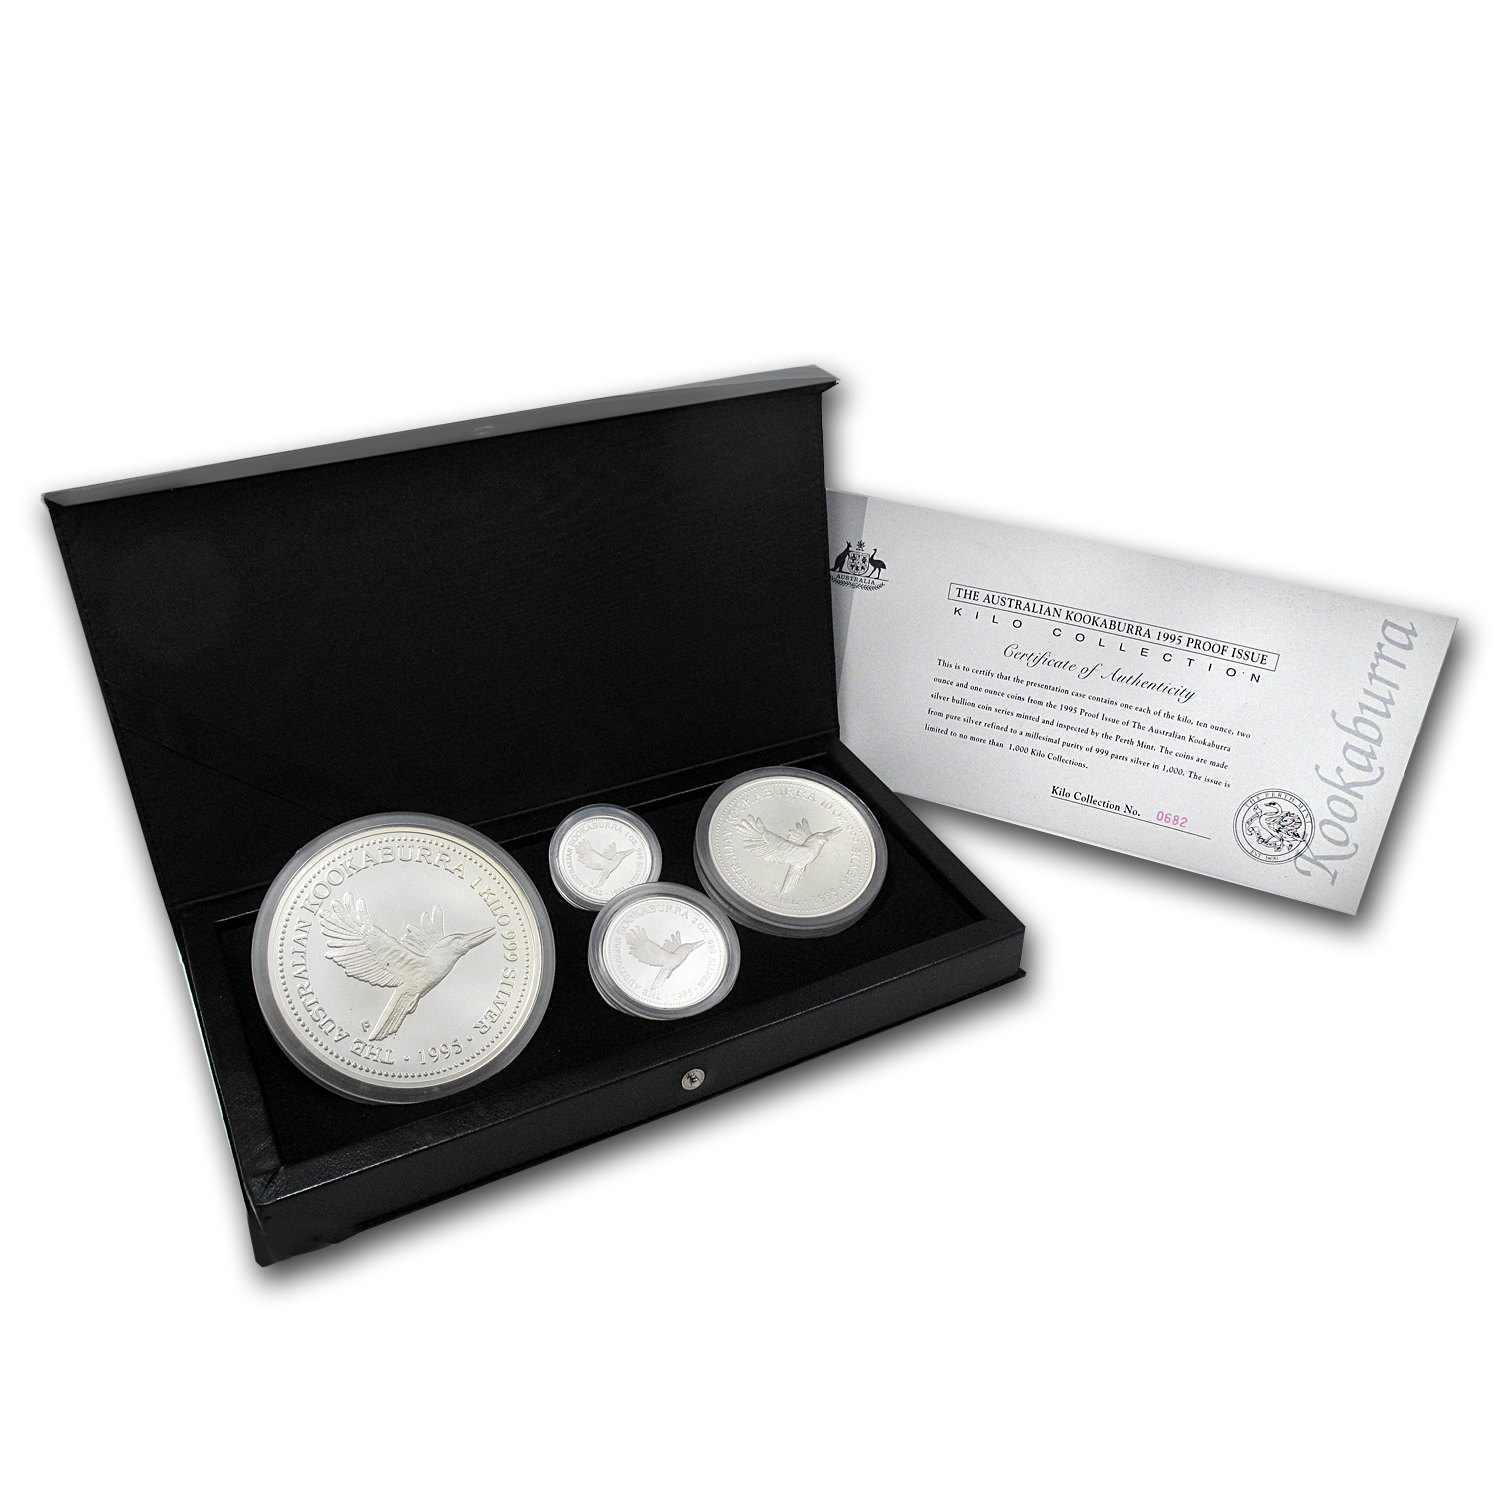 1995 Australia 4-Coin Silver Kookaburra Proof Set